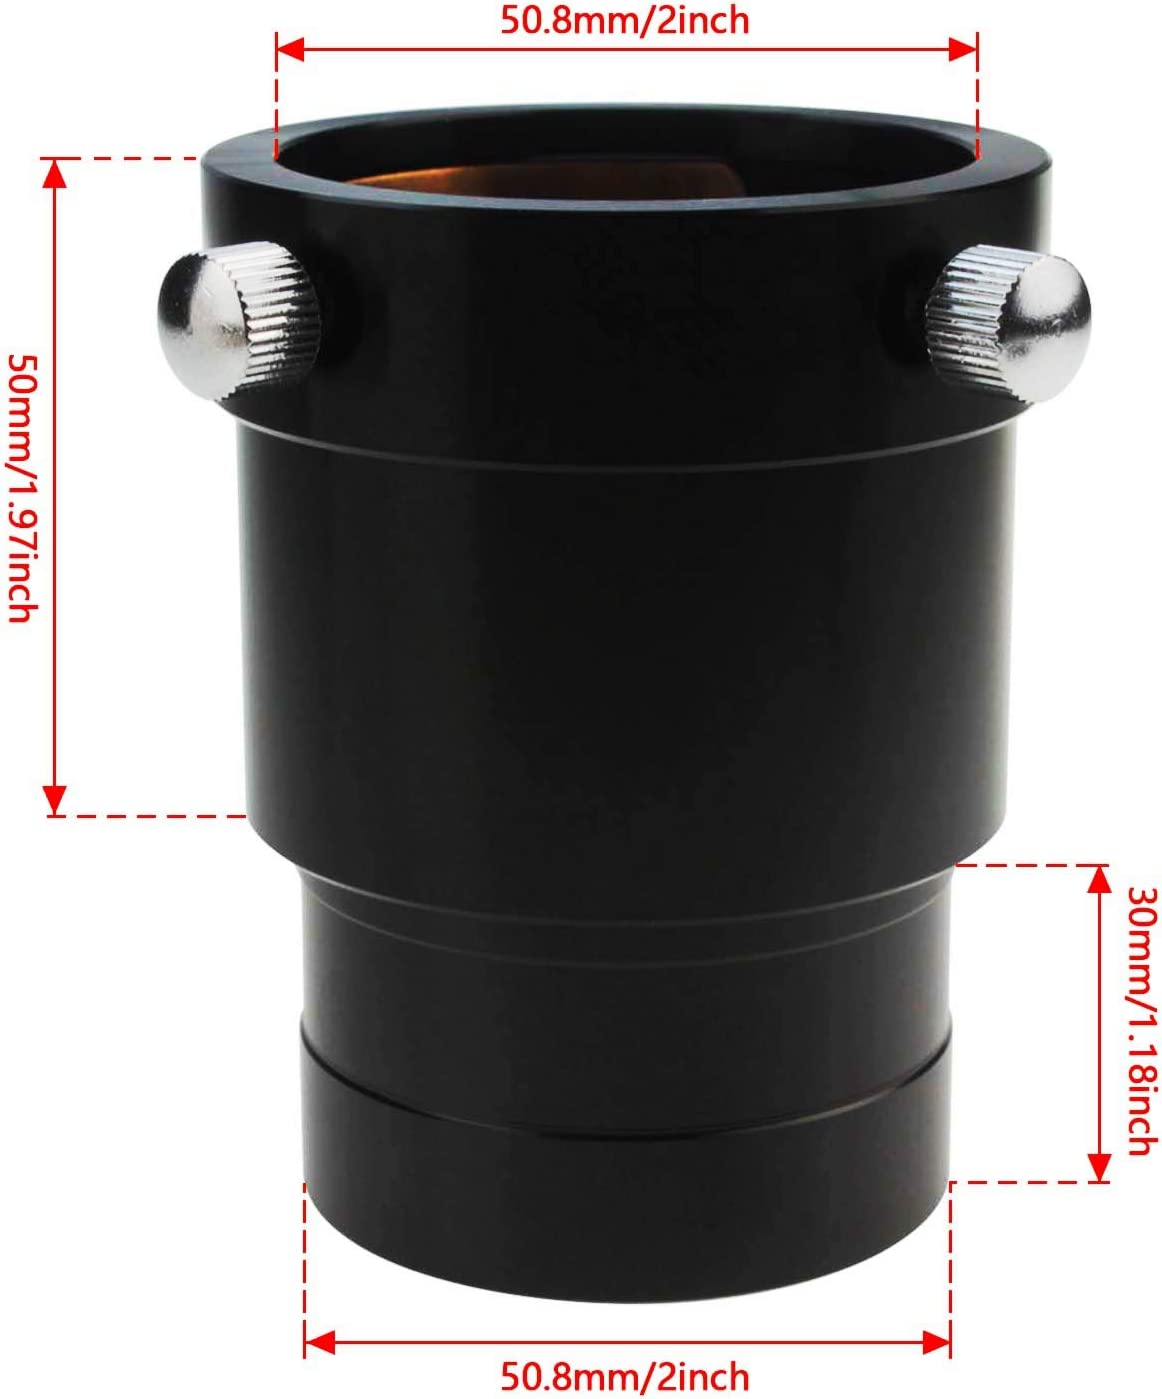 Astromania 2-Inch Telescope Eyepiece Extension Tube Adapter Optical Length 35mm with Standand 2-Inch Filter Threads